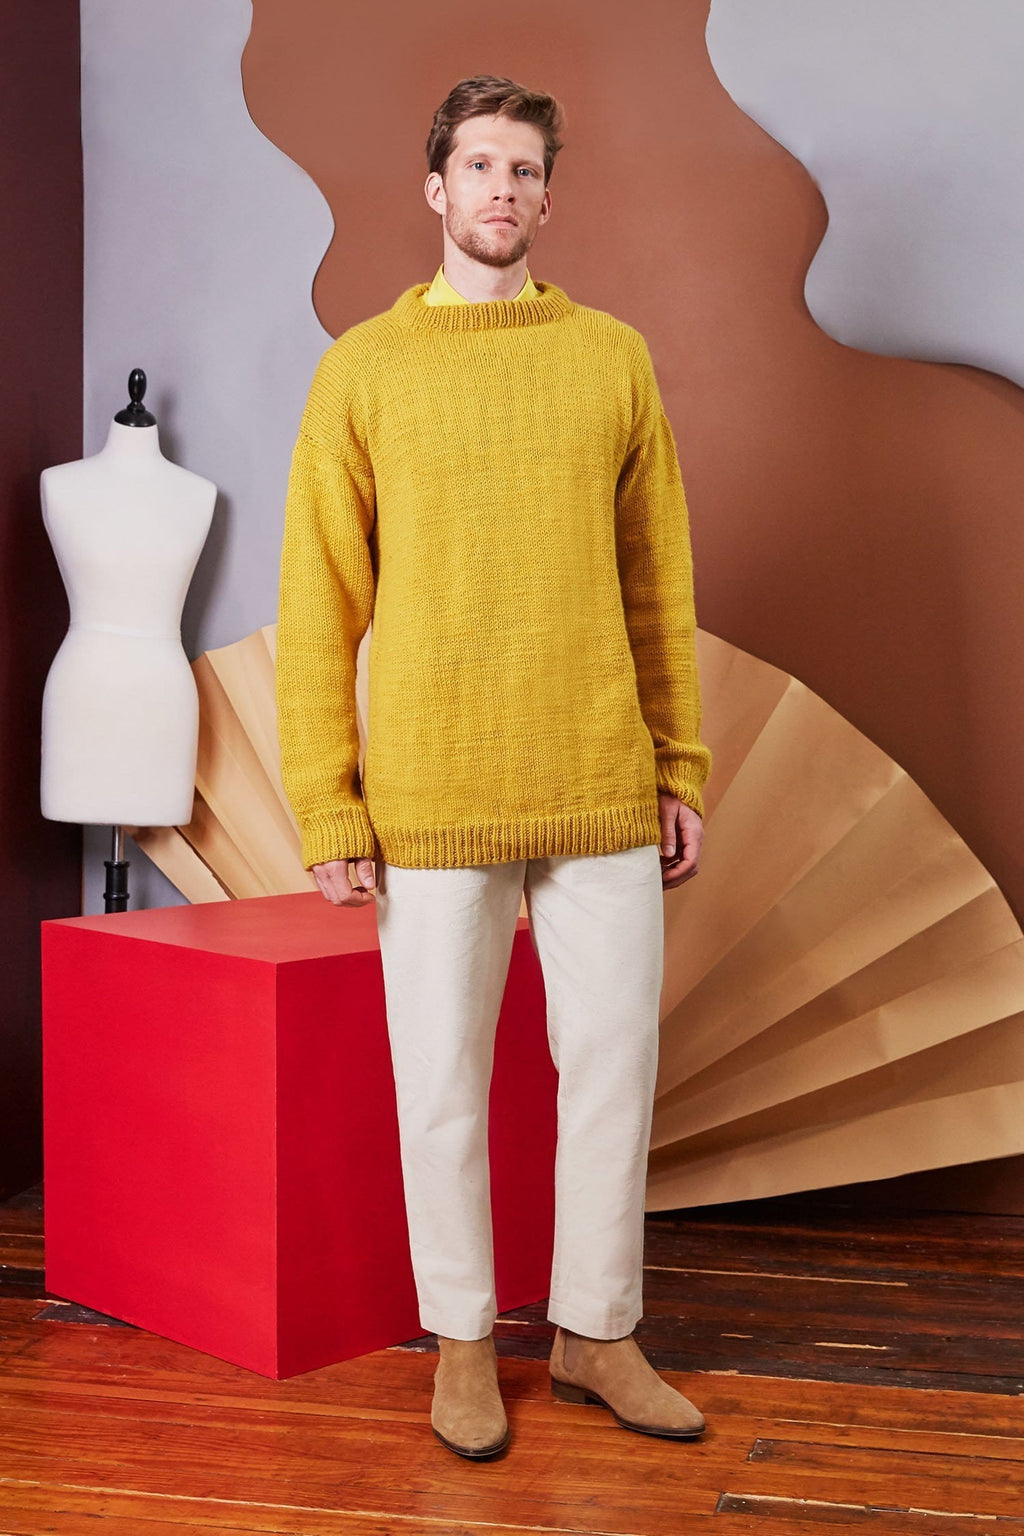 Allister Sweater - Himelhoch's